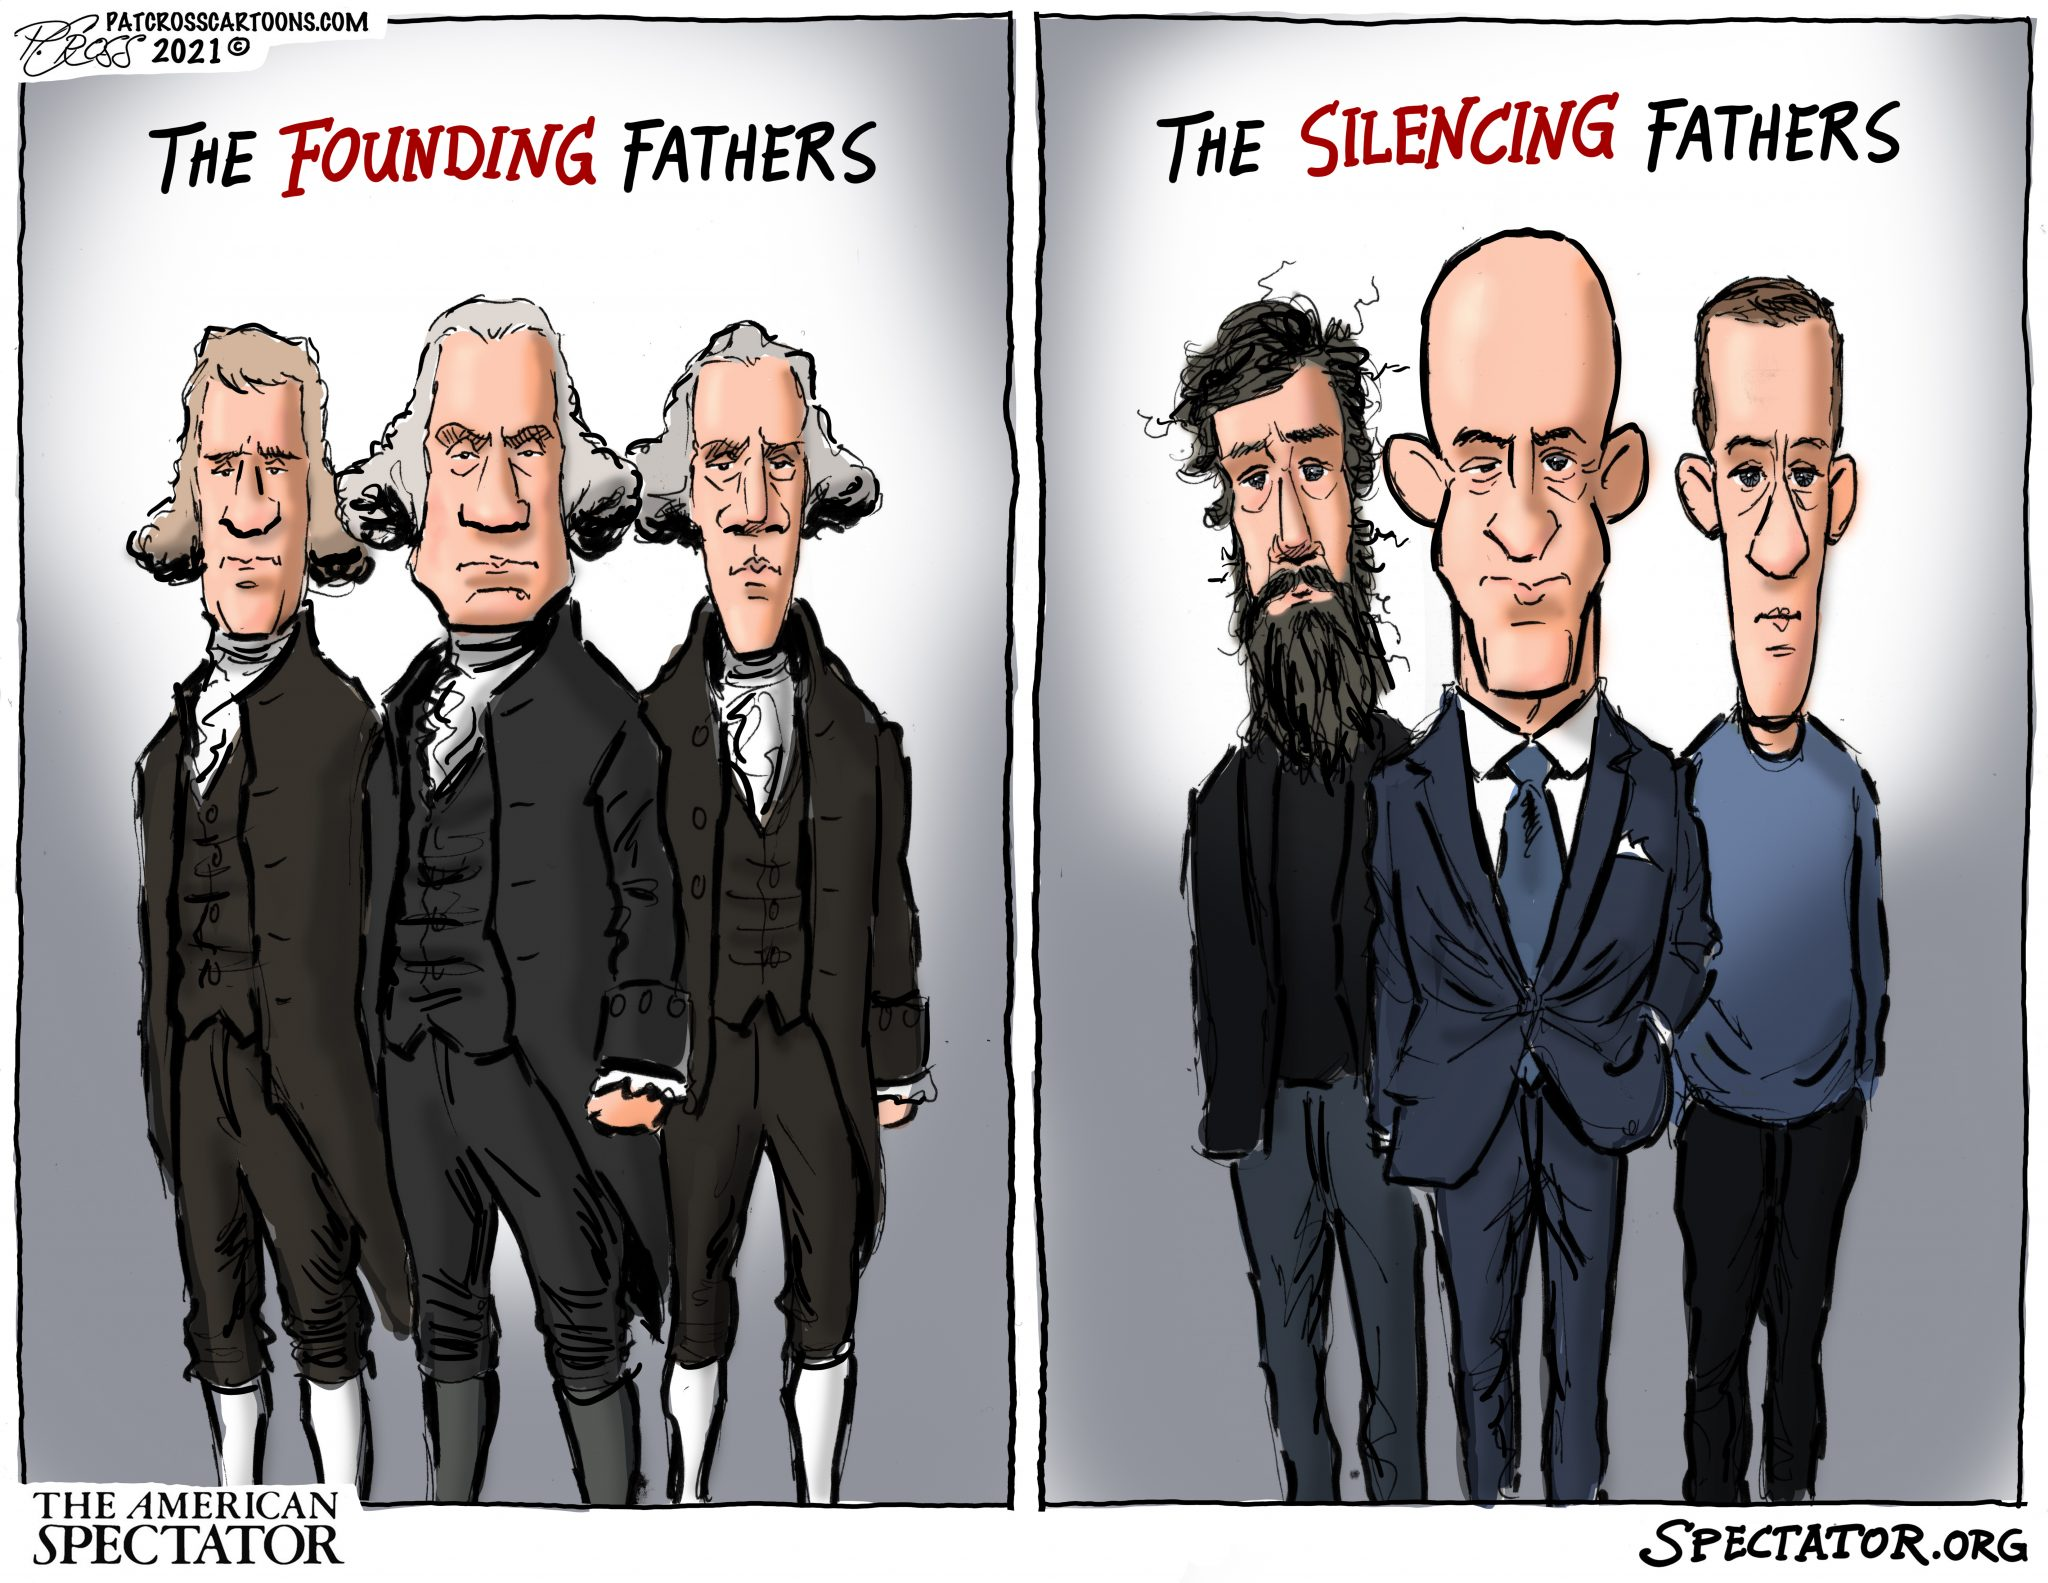 """The Silencing Fathers,"" editorial cartoon by Patrick Cross for The American Spectator, spectator.org, published January 15, 2021."